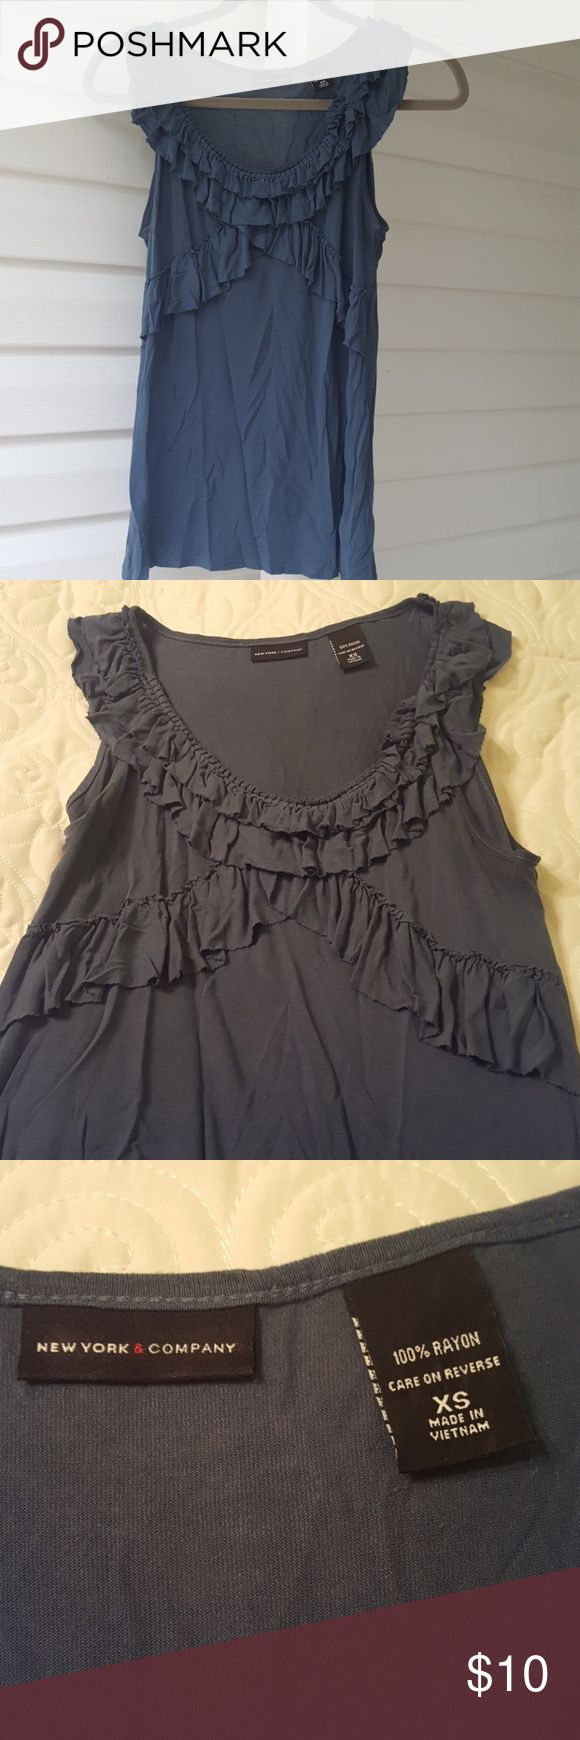 New York and Company blueish-gray tank size XS. New York and Company blueish-gray tank size XS. Lovely ruffles gives the tank a feminine look. Great used condition. Non smoking home. New York and Company Tops Tank Tops